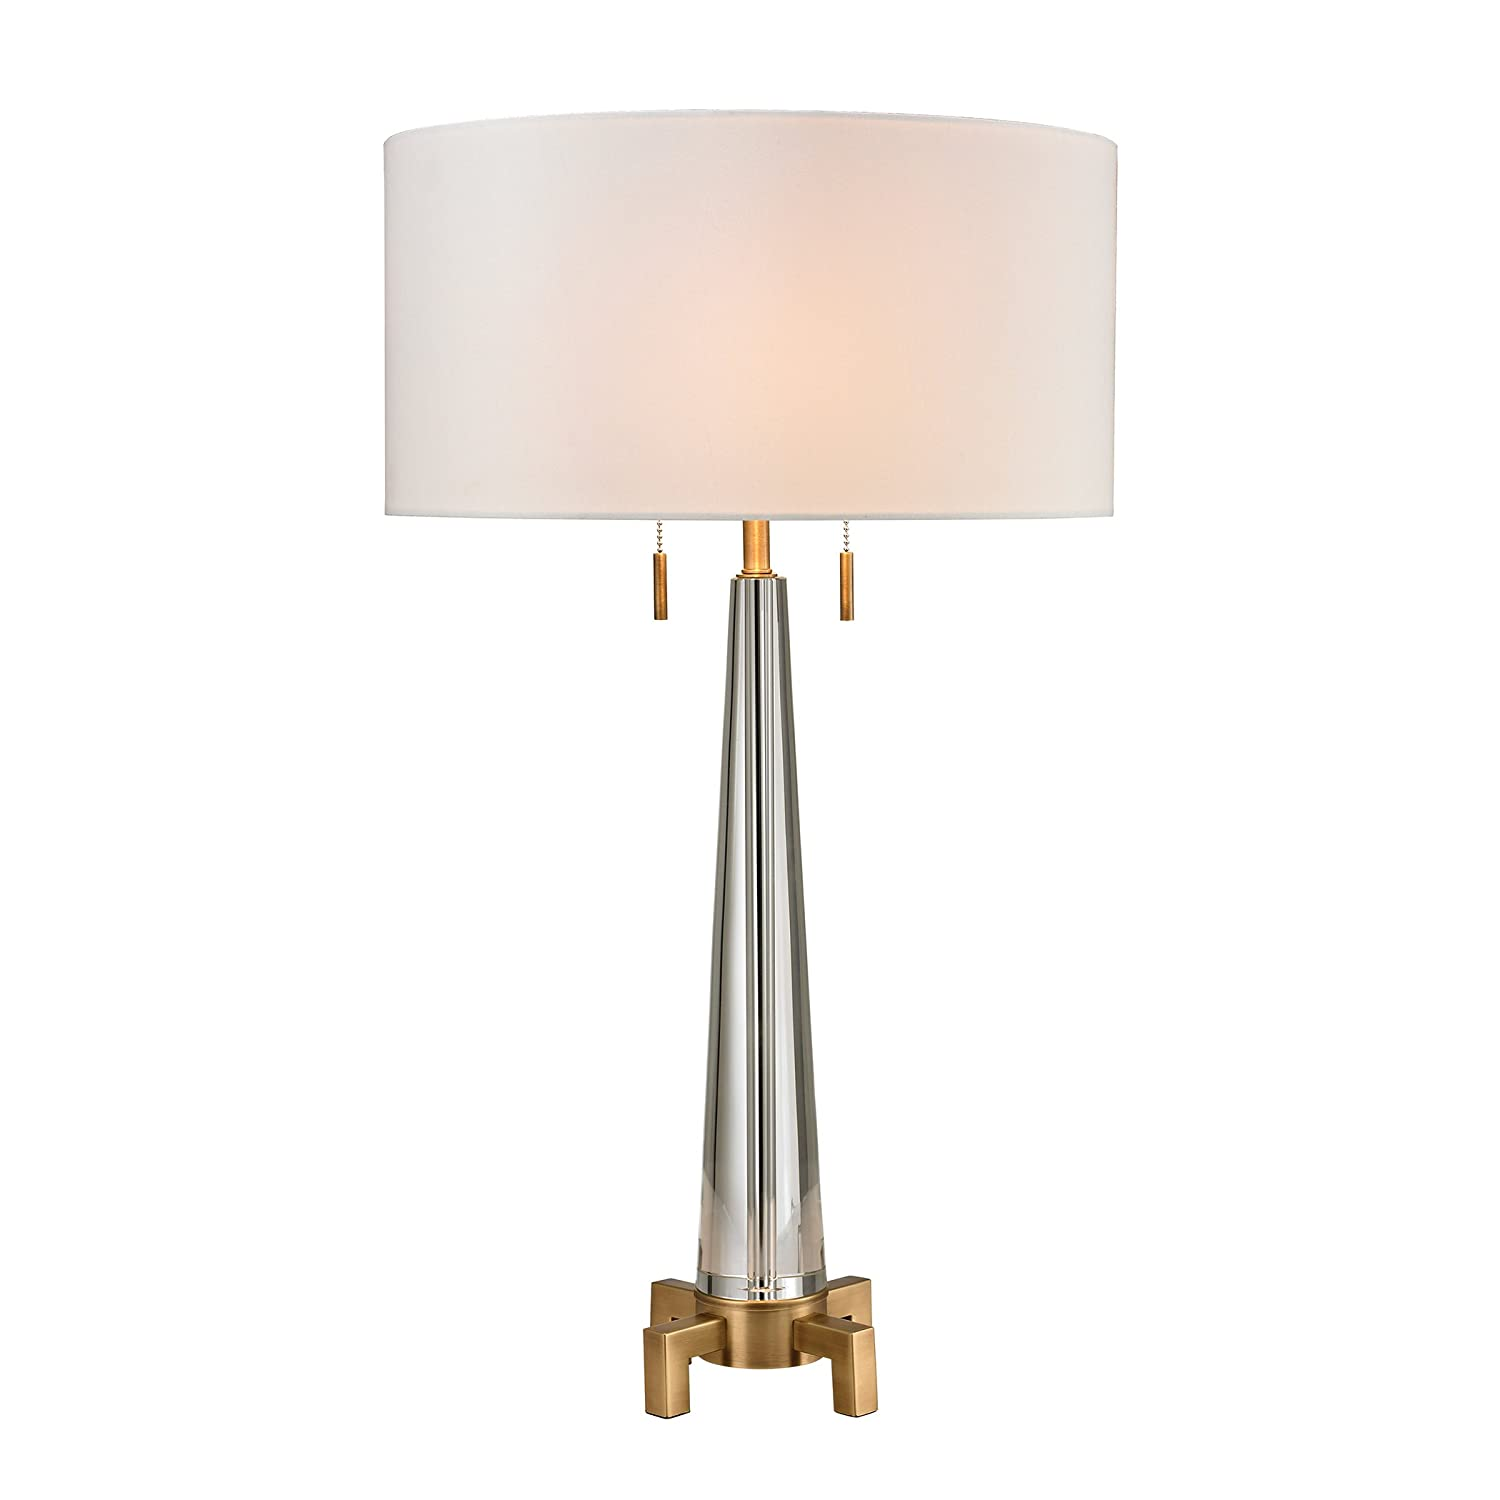 Dimond Lighting D2682 Bedford Crystal Column Table L& with Footed Base Clear Aged Brass - - Amazon.com  sc 1 st  Amazon.com & Dimond Lighting D2682 Bedford Crystal Column Table Lamp with ... azcodes.com